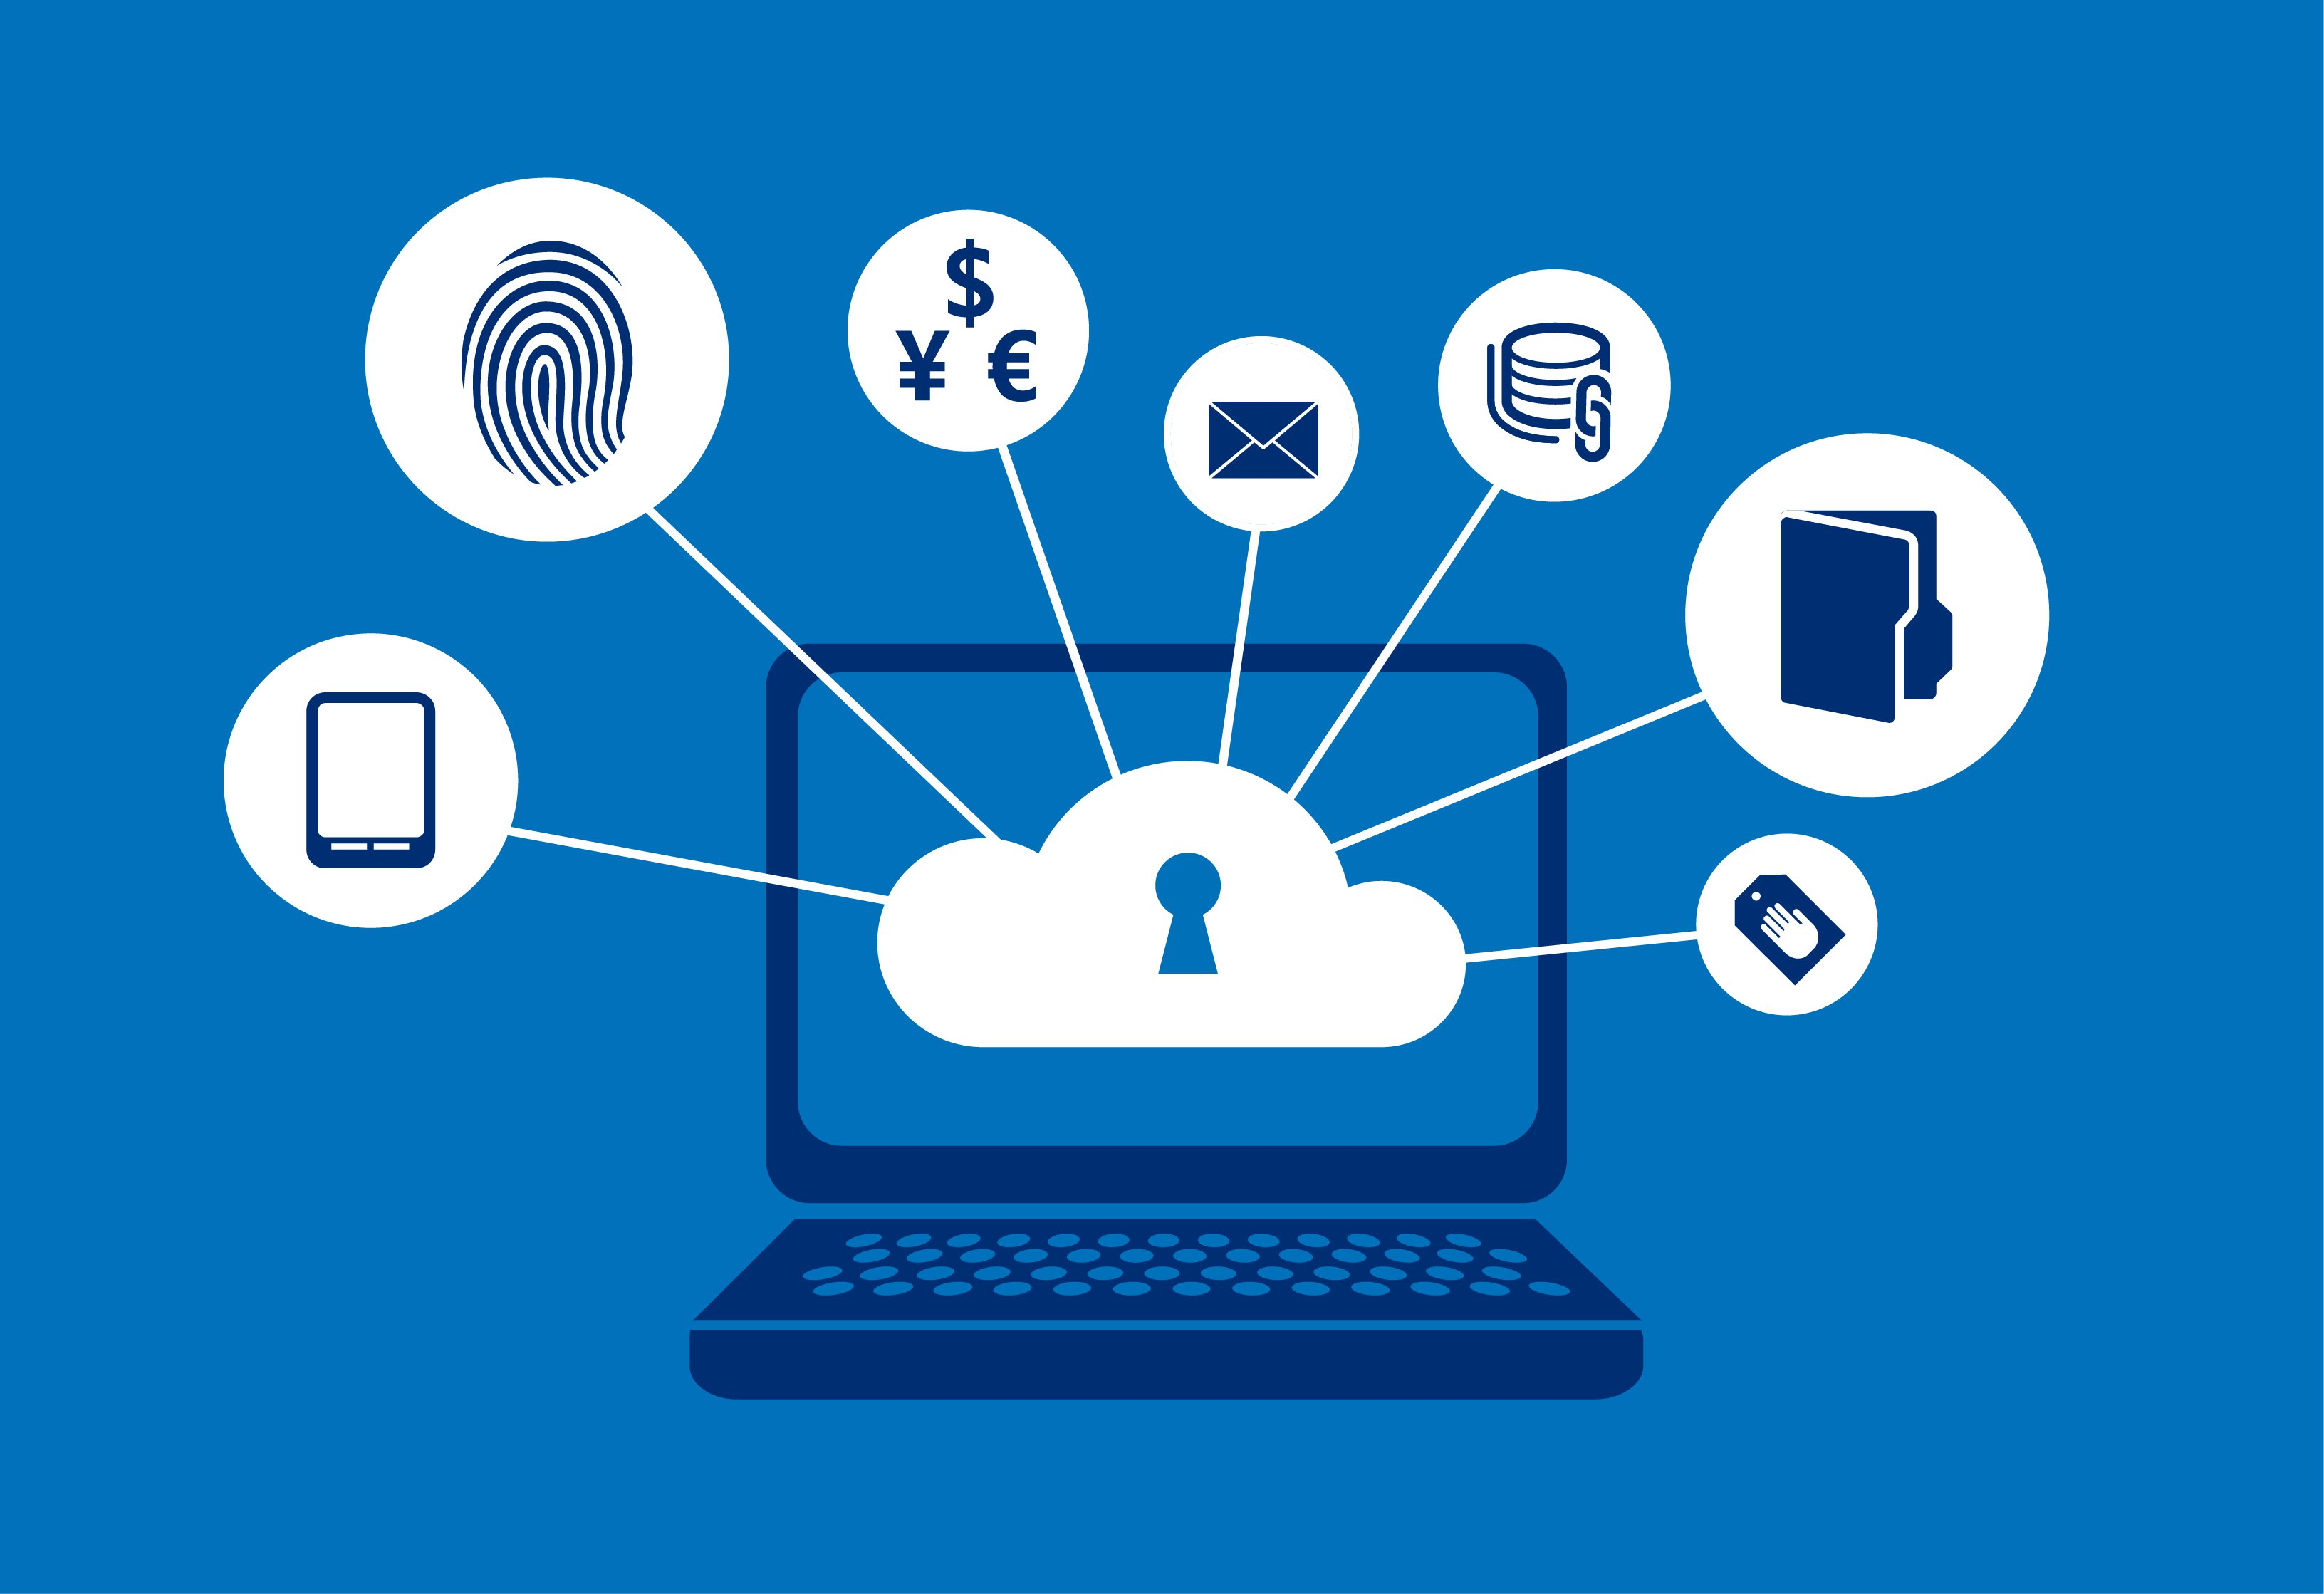 protecting data and privacy in the cloud part 2 microsoft securityprotecting data and privacy in the cloud part 2